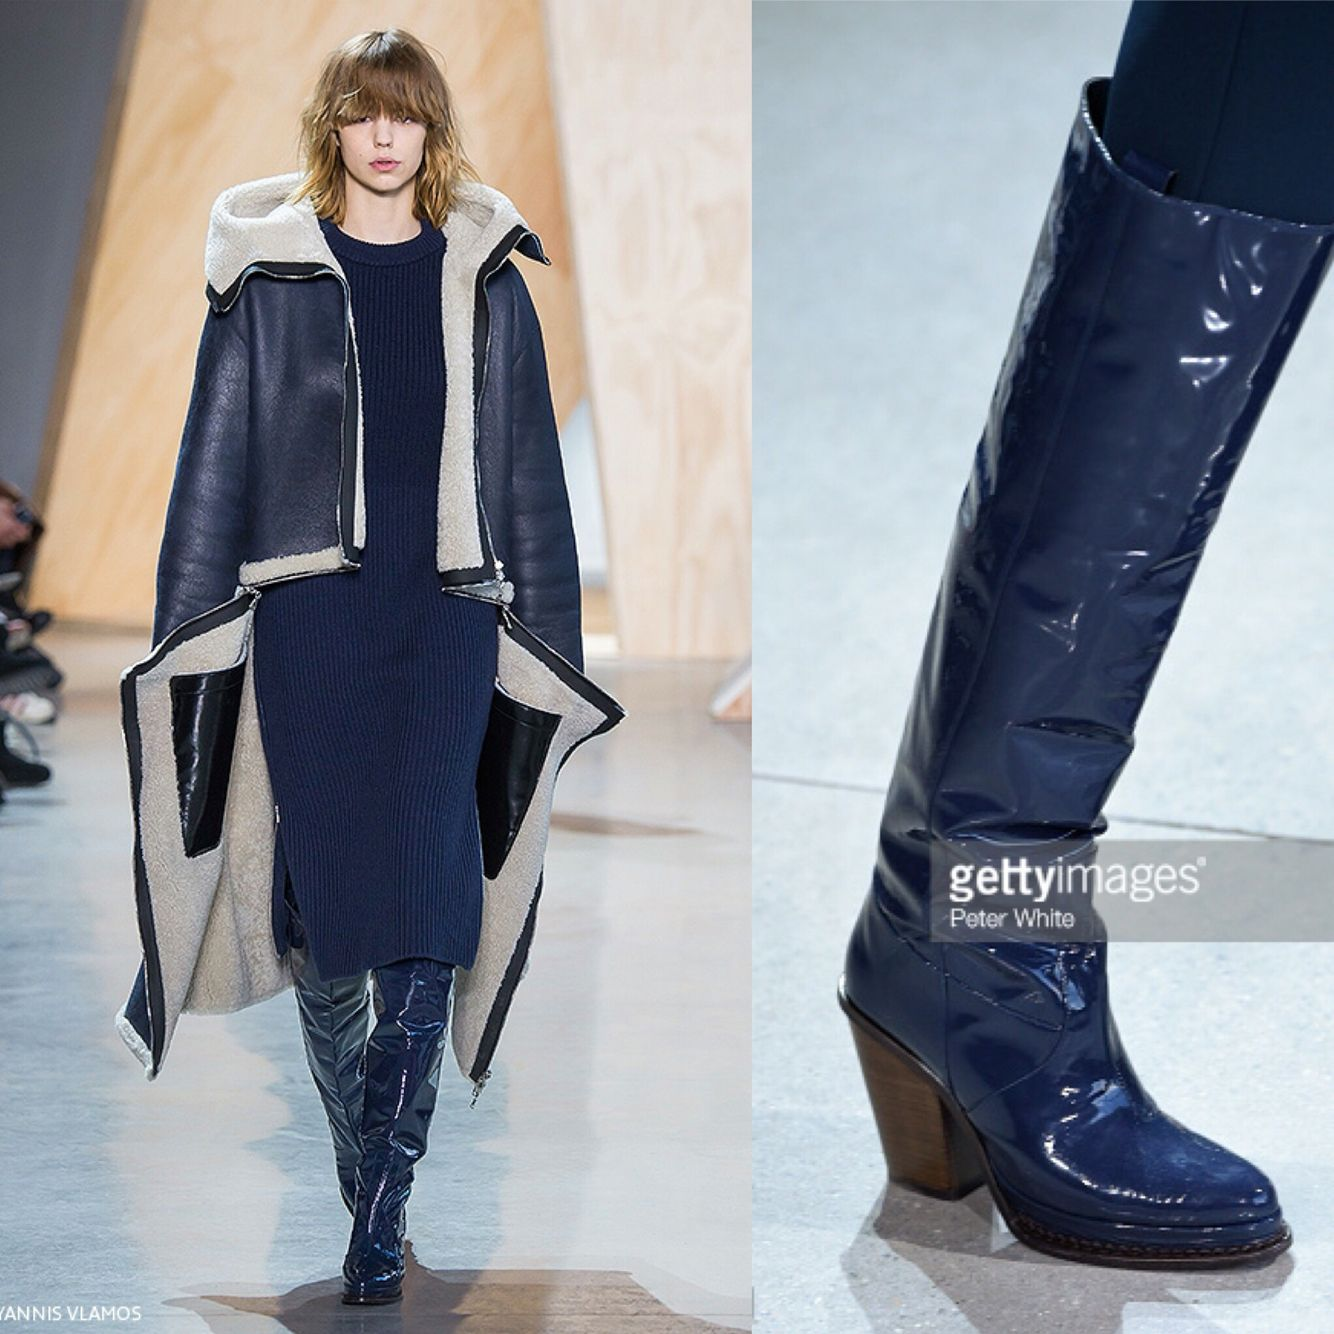 Lacoste f/w 2016. Those boots...❤️